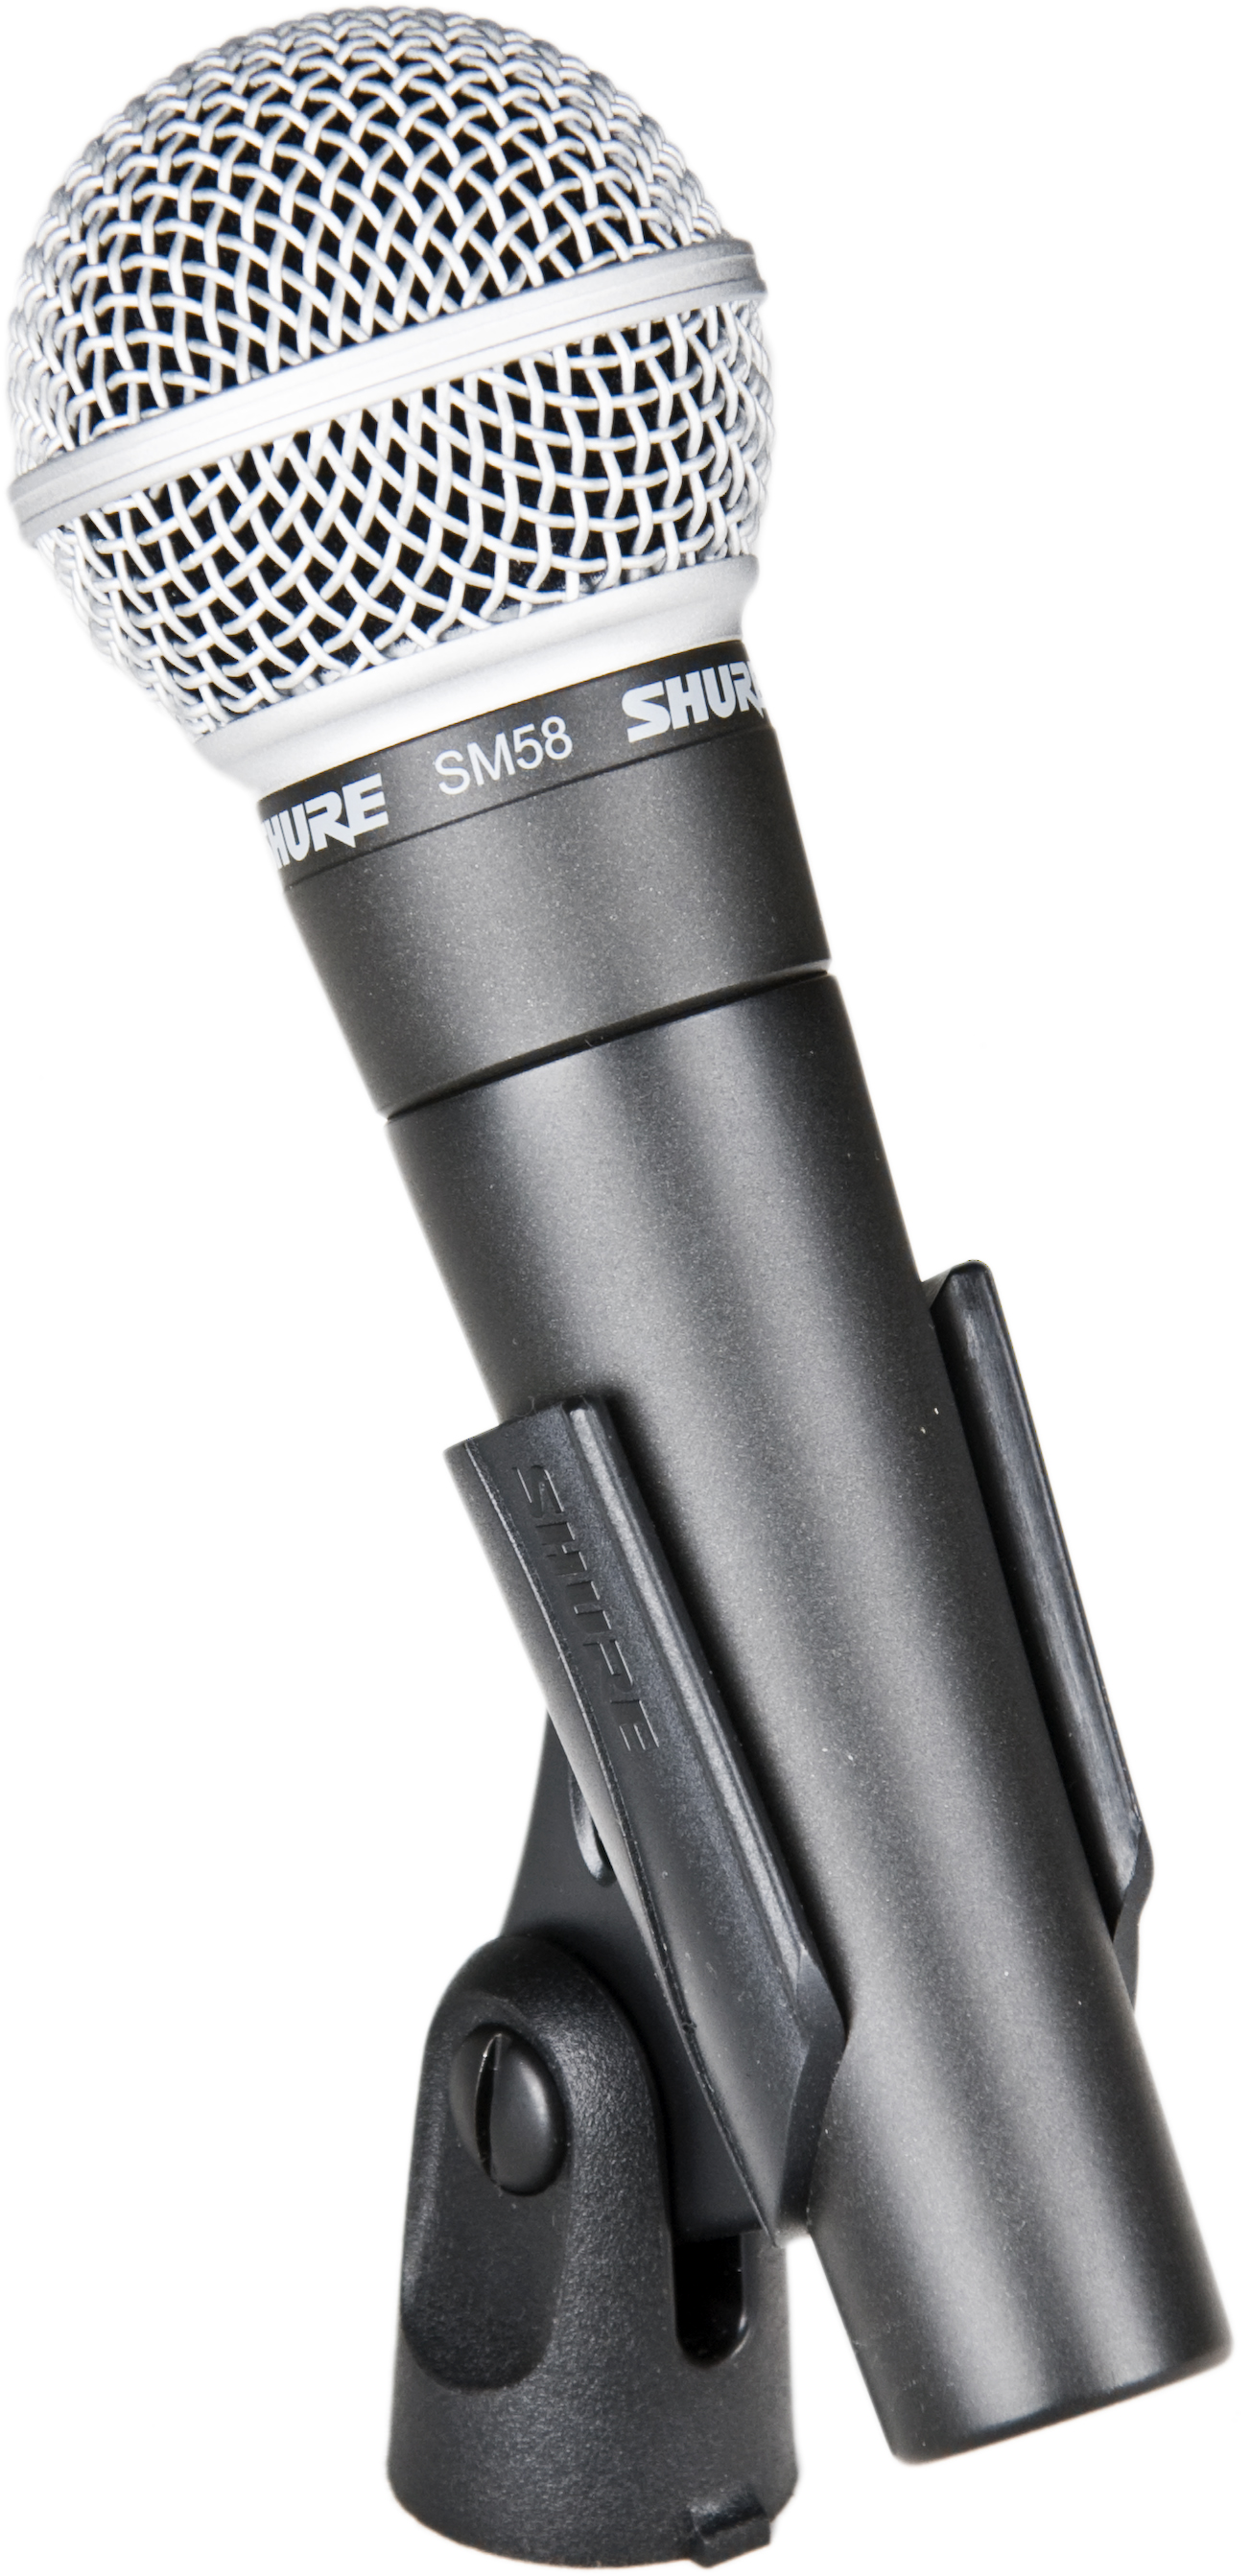 Shure Sm58 Sound Light Rental Event Media Studio Acquris Electret Microphone To Xlr Wiring Together With Sc4060 Dpa Microphones